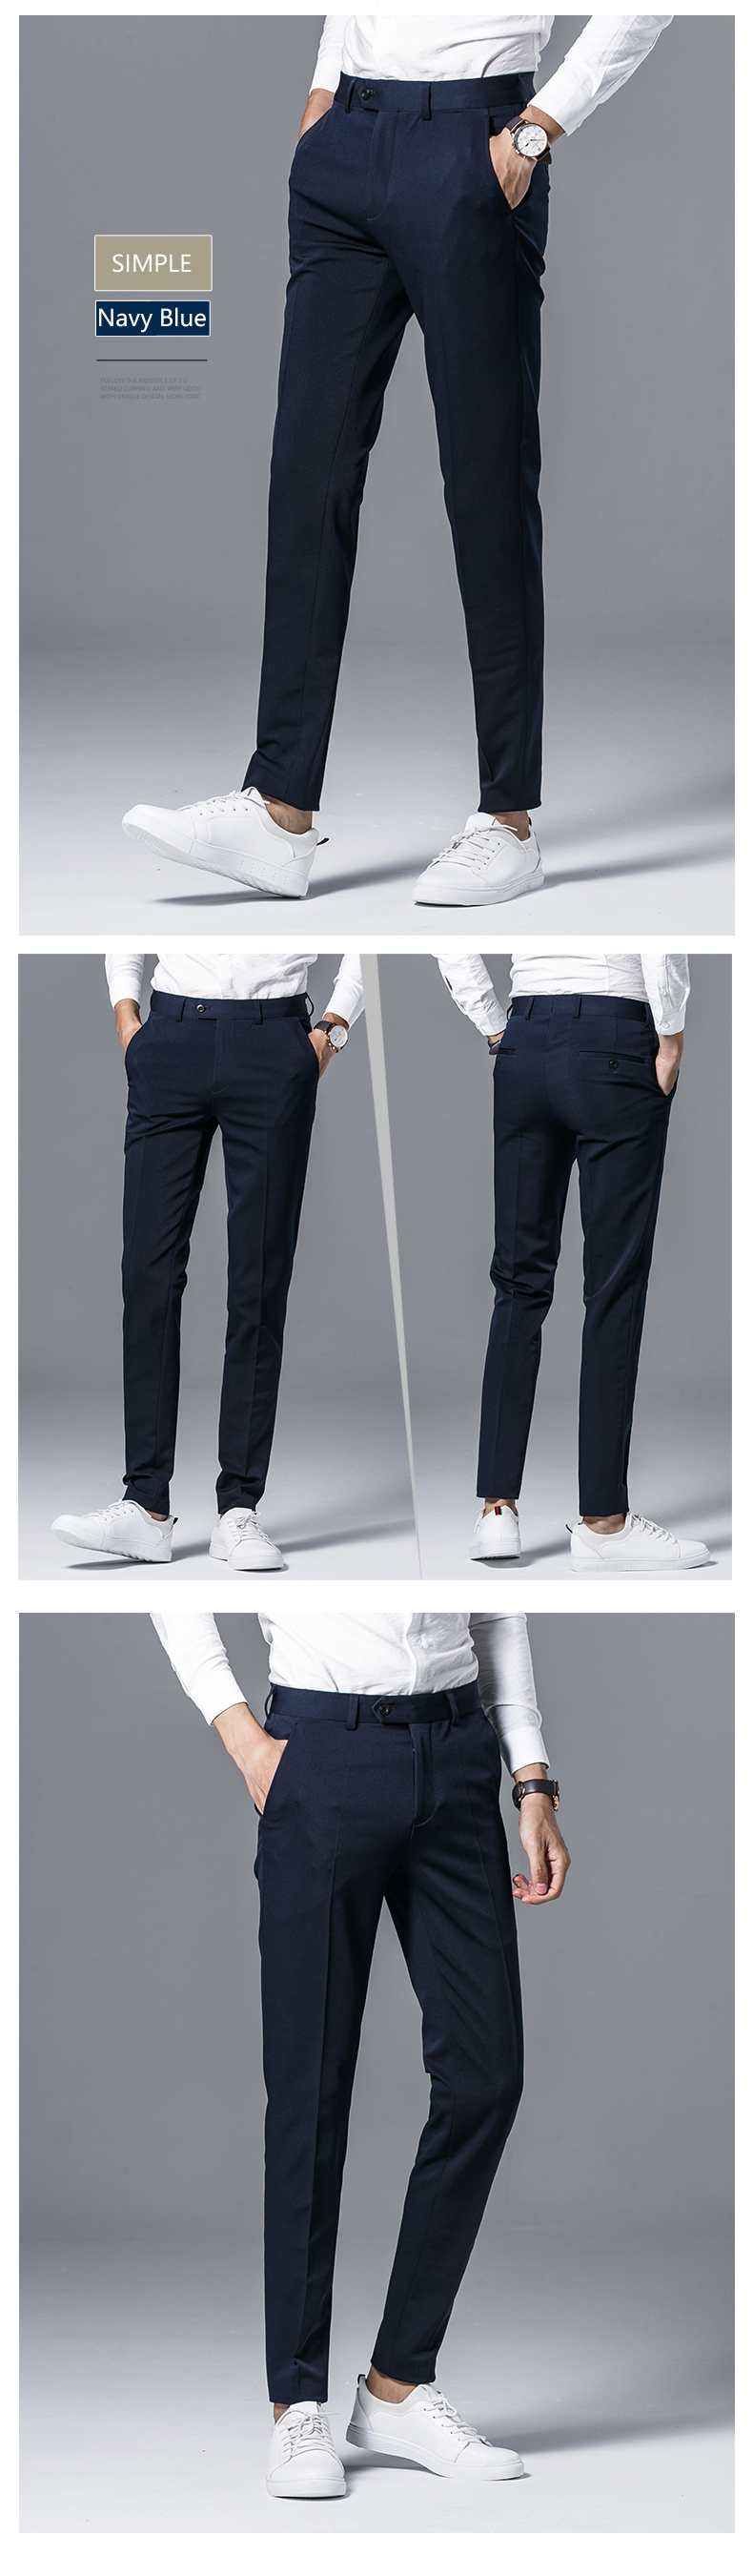 d2366375a7728c Desirable Time Mens Black Dress Pants Size 28-36 Fashion Brand ...